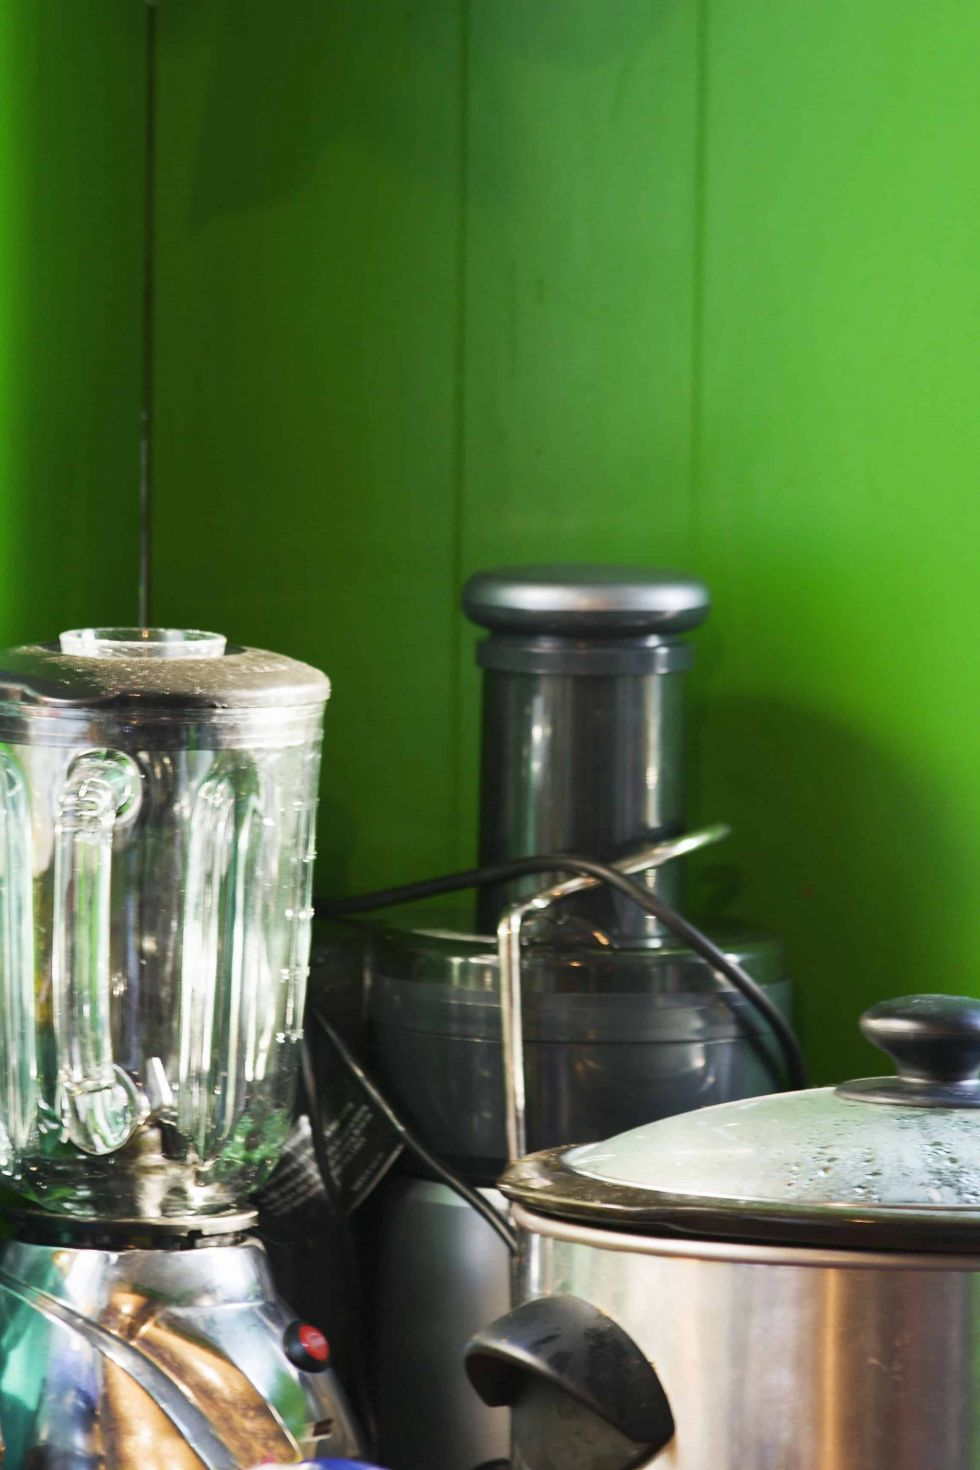 Blender and juicer with green background